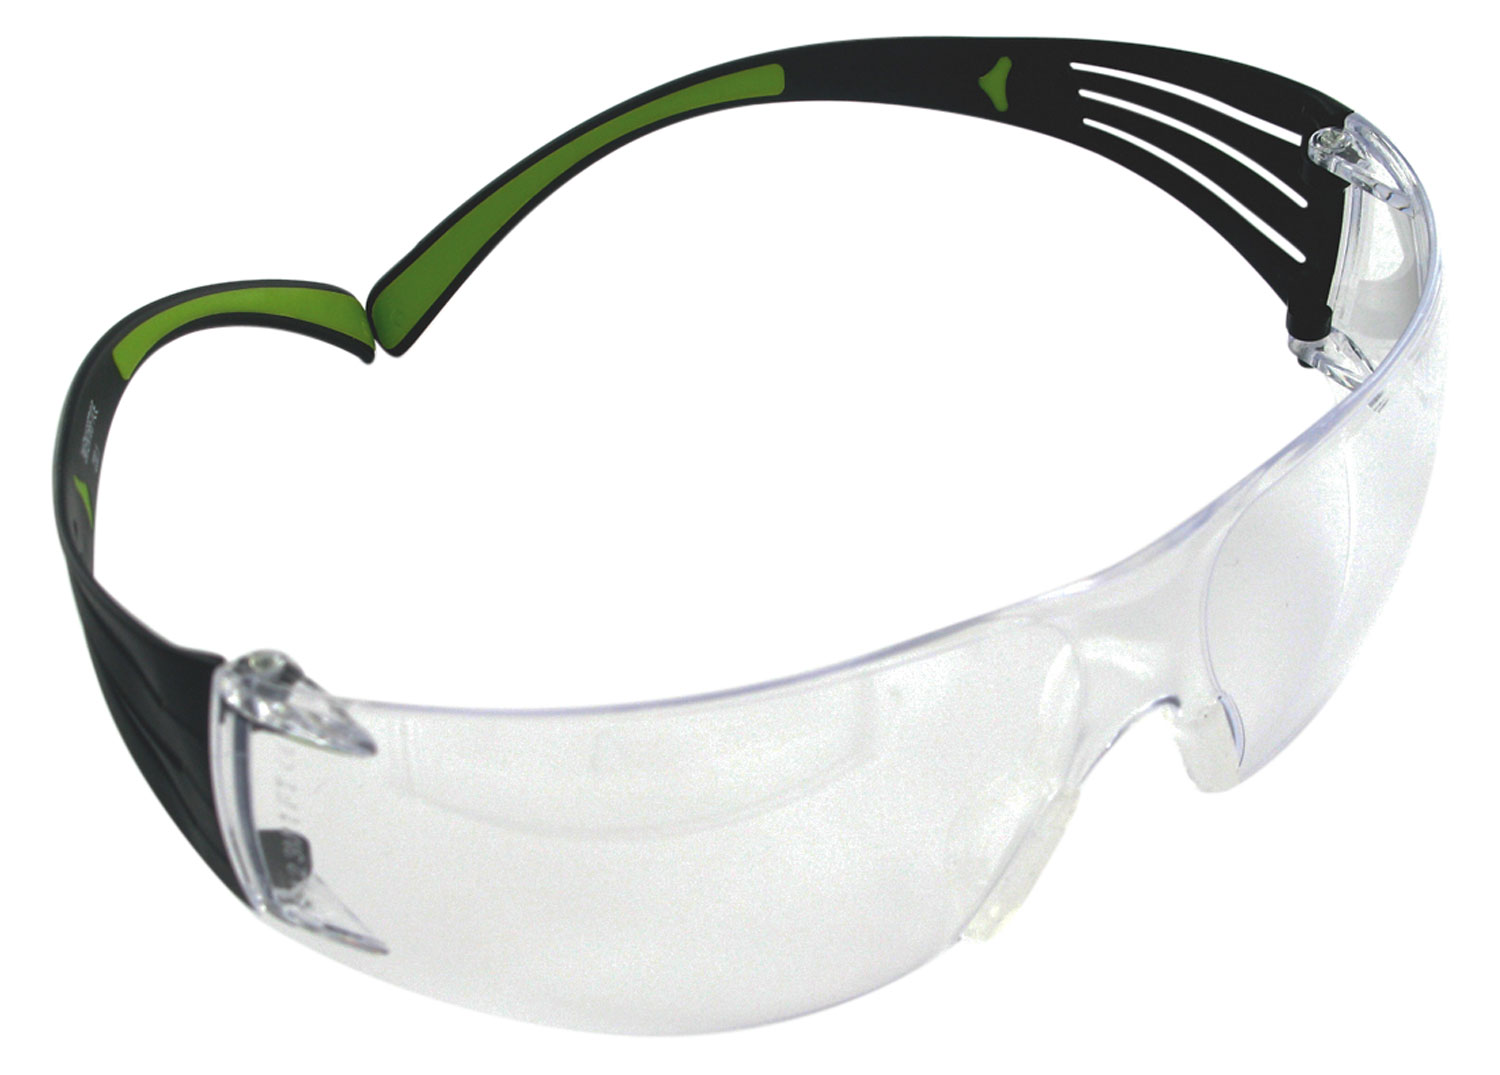 3M Peltor SF400PC8  Sport SecureFit 400 Shooting/Sporting Glasses Black/Green Frame Clear Polycarbonate Lens 1 Pair